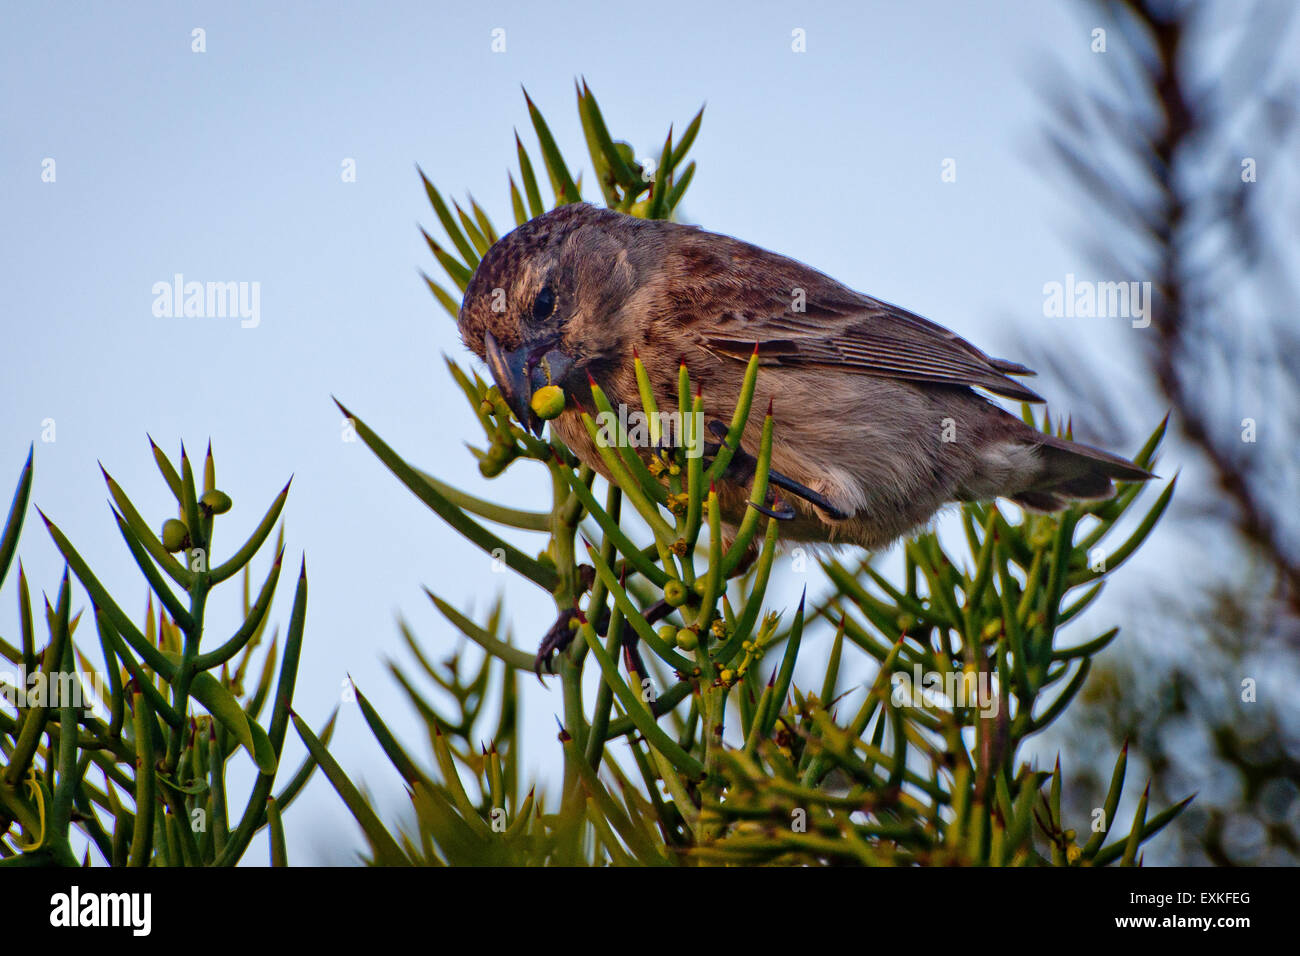 Darwin's finch in tree with seed, Galapagos Islands, Ecuador - Stock Image